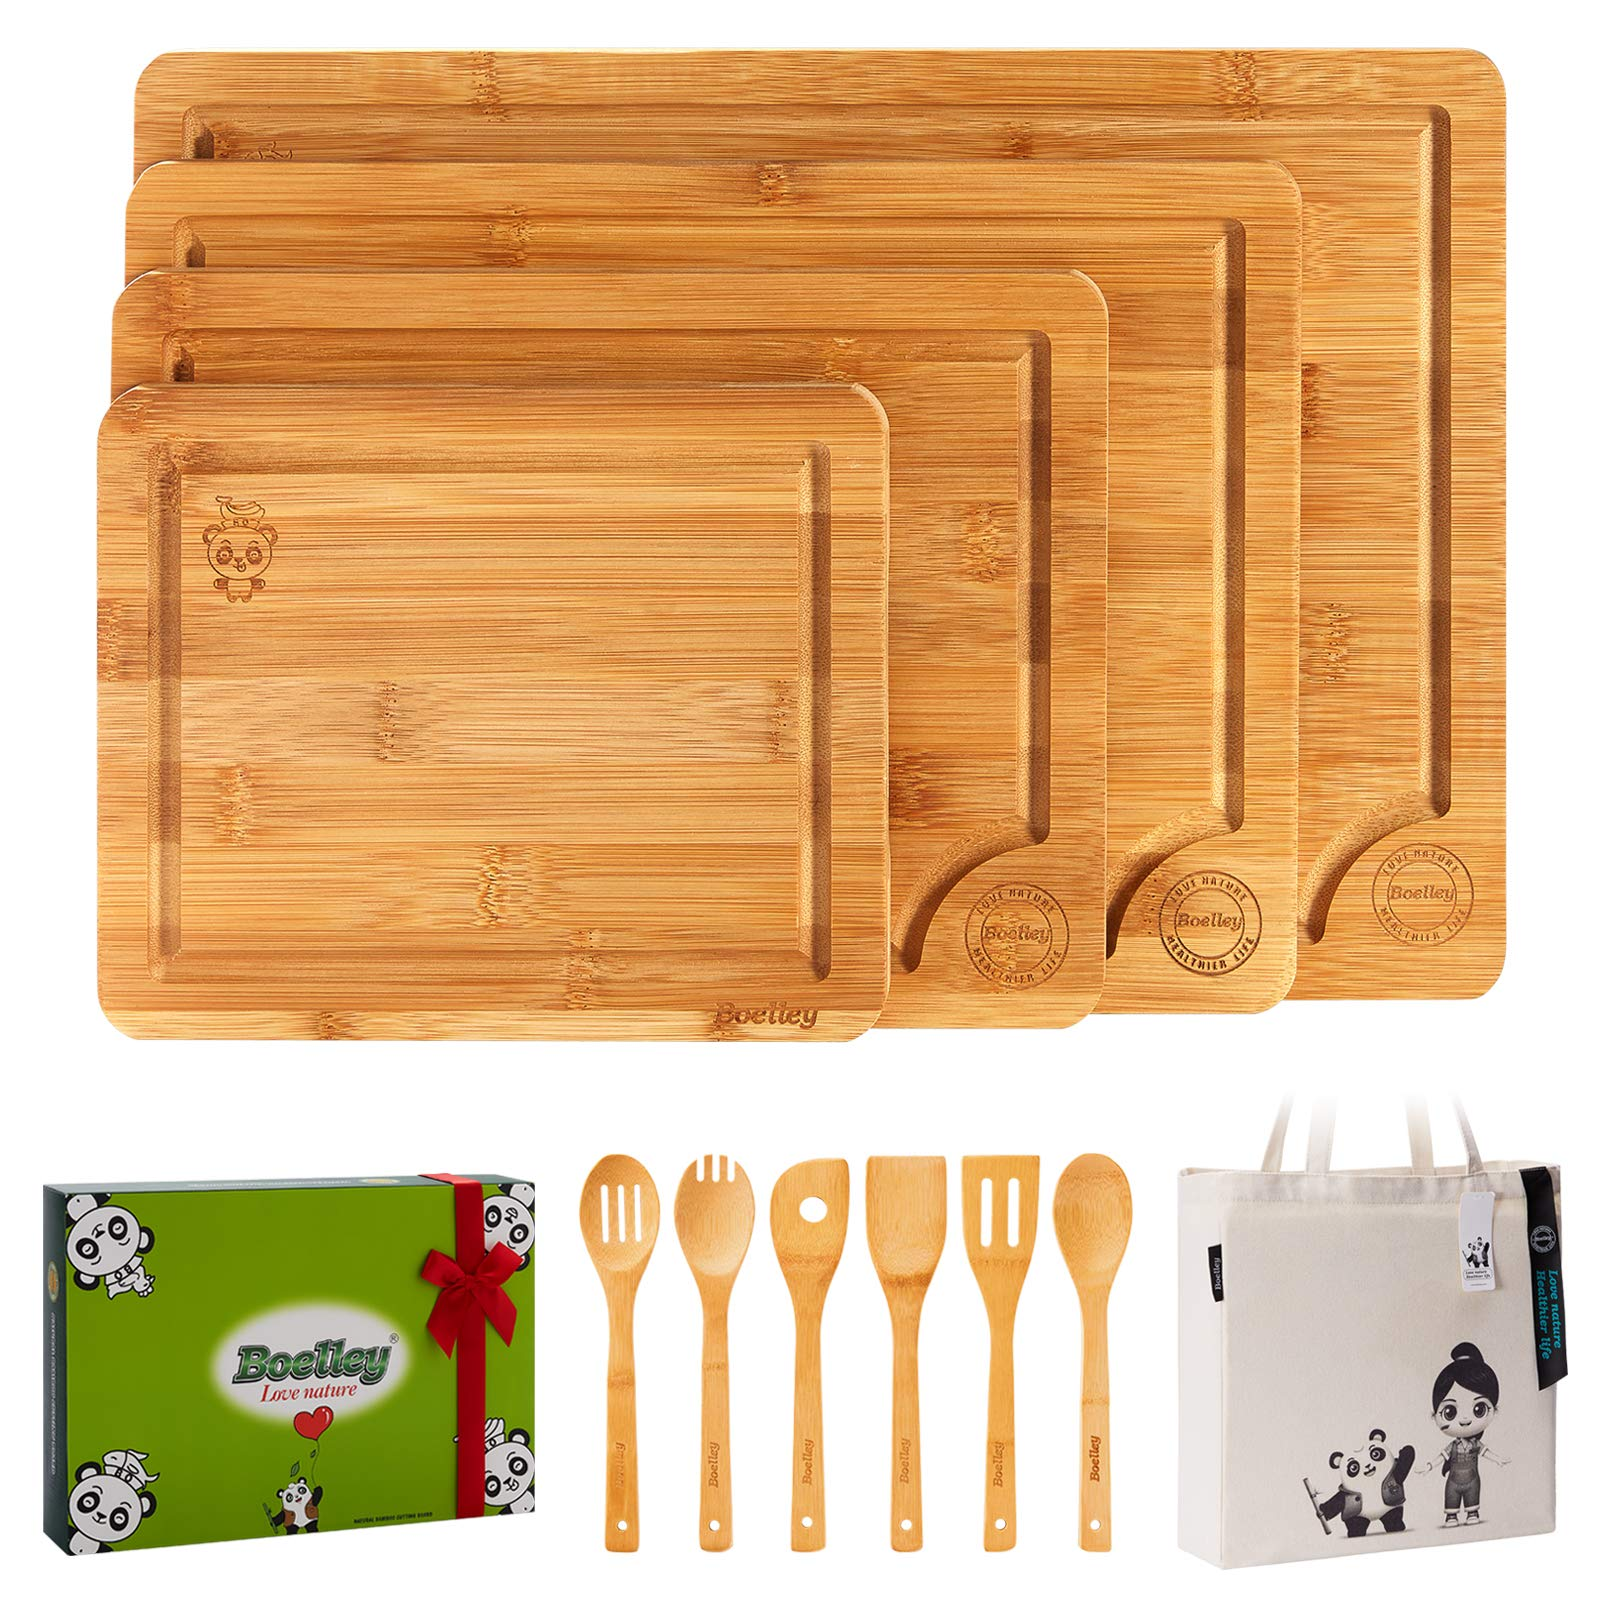 Boelley Bamboo Cutting Board set of 4 with 6 Utensils and 1